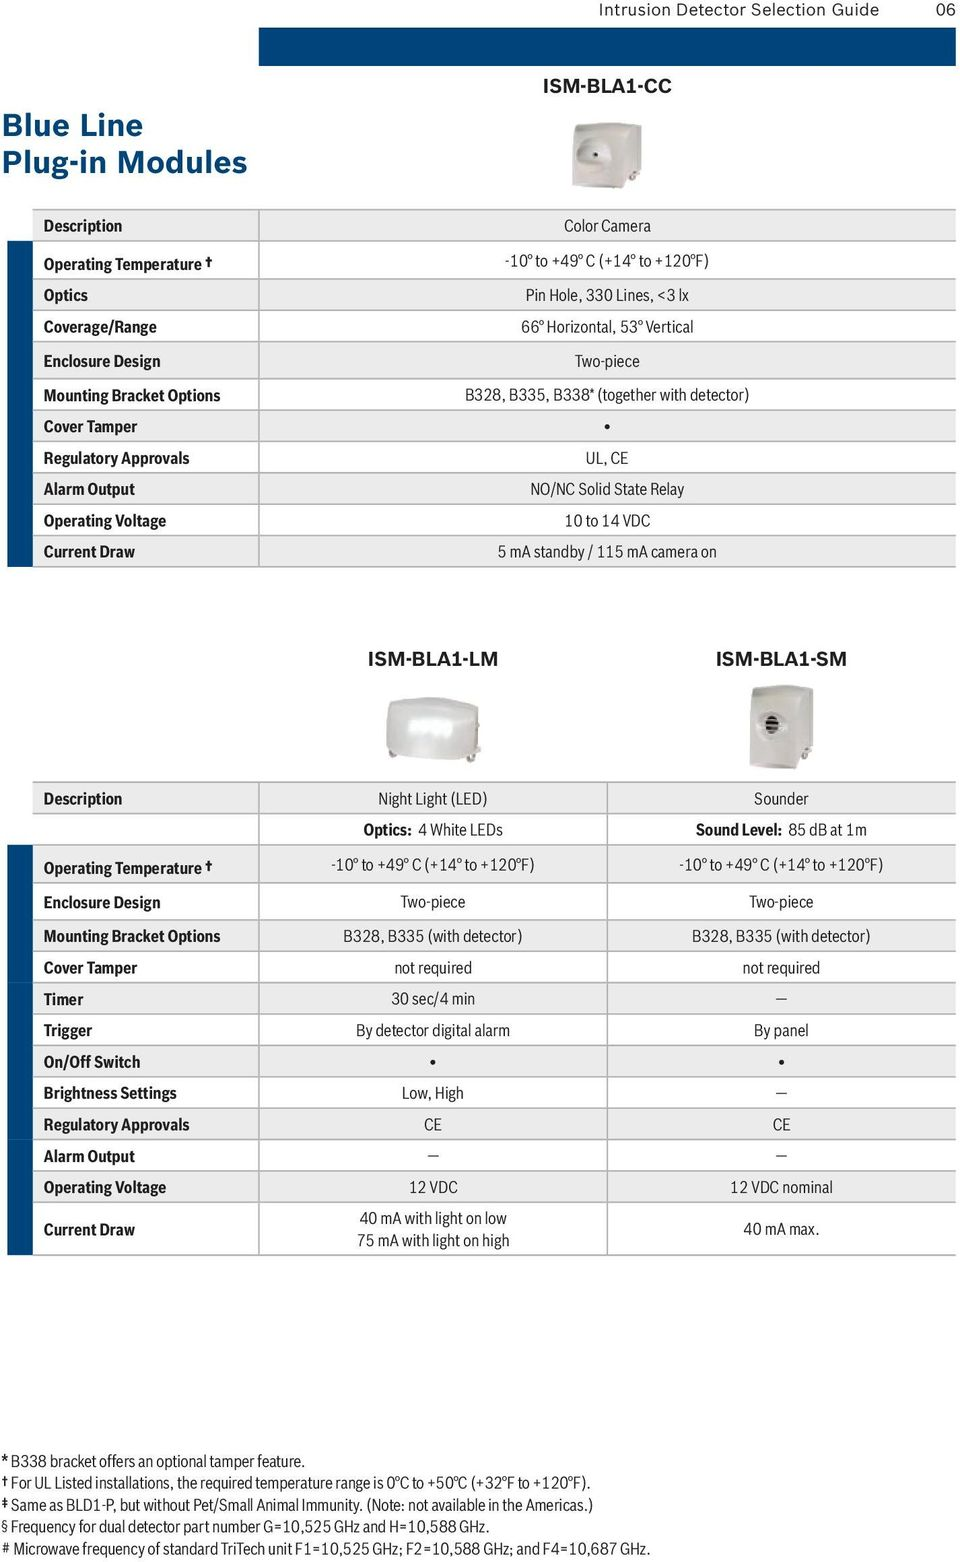 Intrusion Detector Selection Guide Pdf The Figure Below Shows Pir325 Electricalspecifications And Layout State Relay 10 To 14 Vdc 5 Ma Standby 115 Camera On Ism